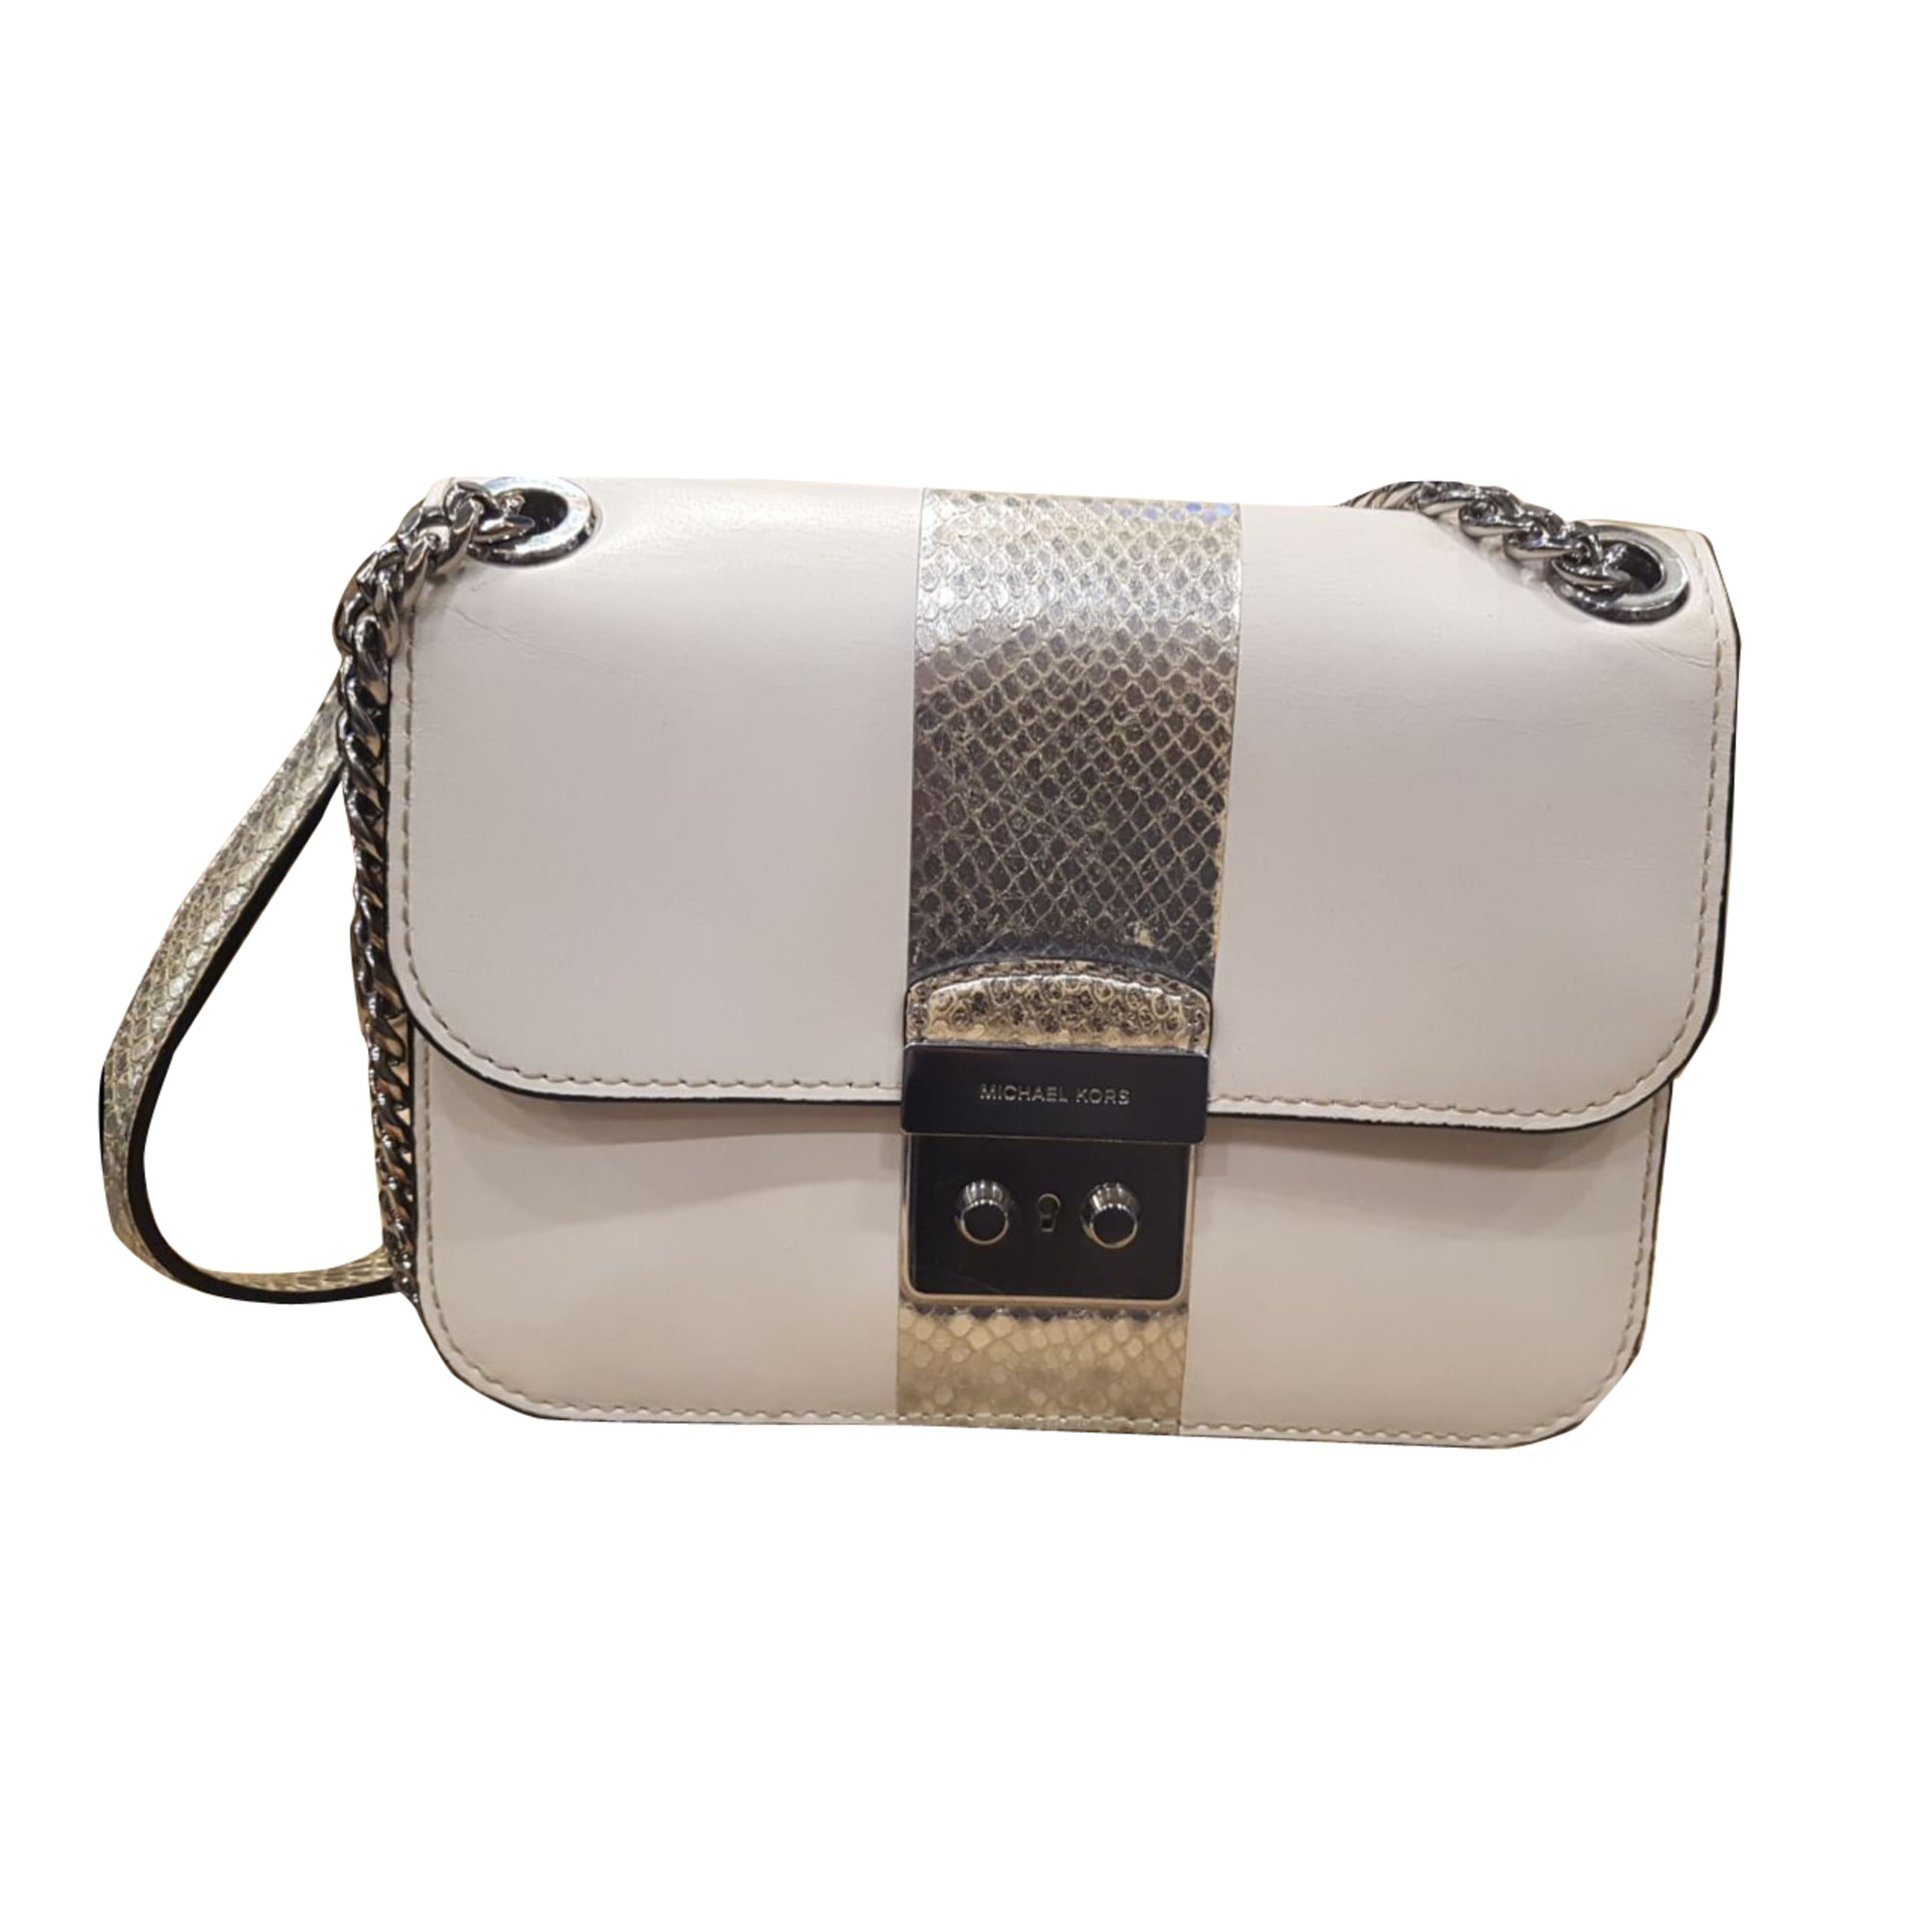 Leather Clutch MICHAEL KORS blanc et argent